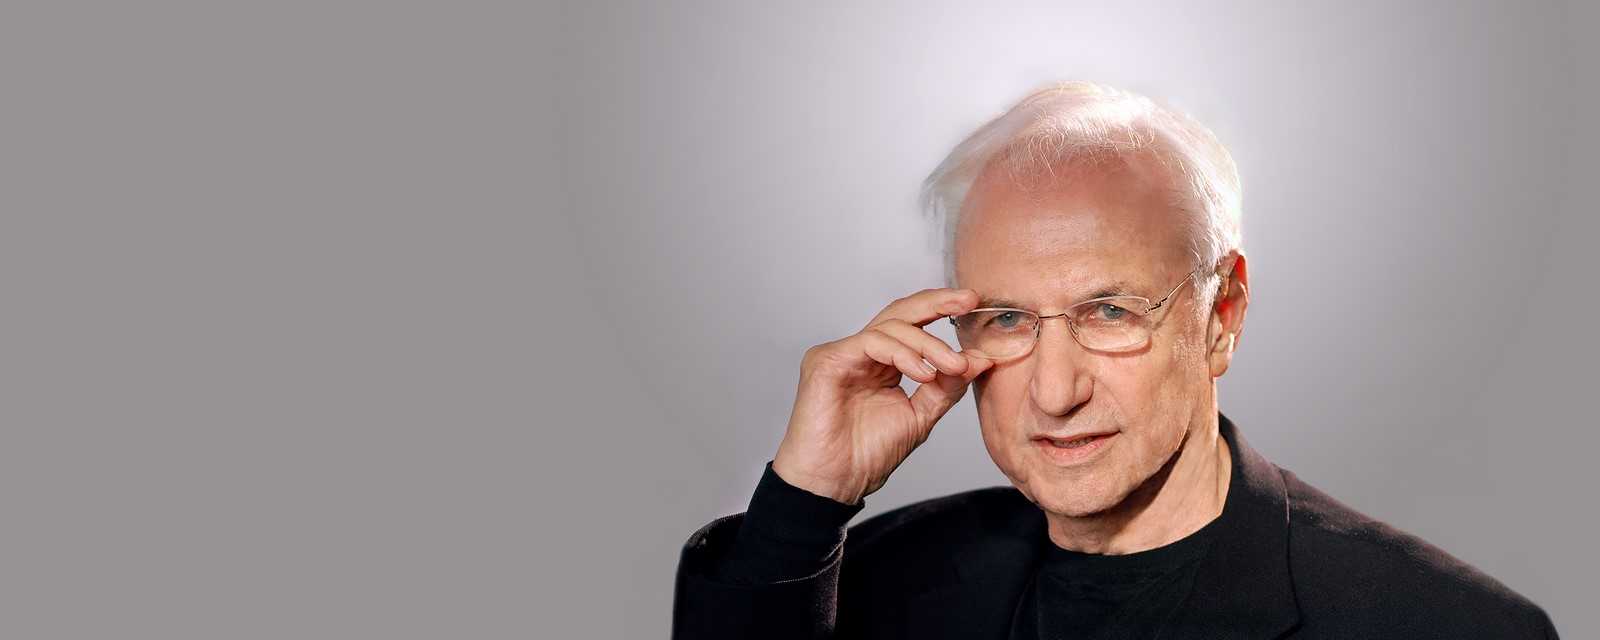 Interviews with Architects: Frank Gehry Interview: Jump Into the Unknown - Sheet2